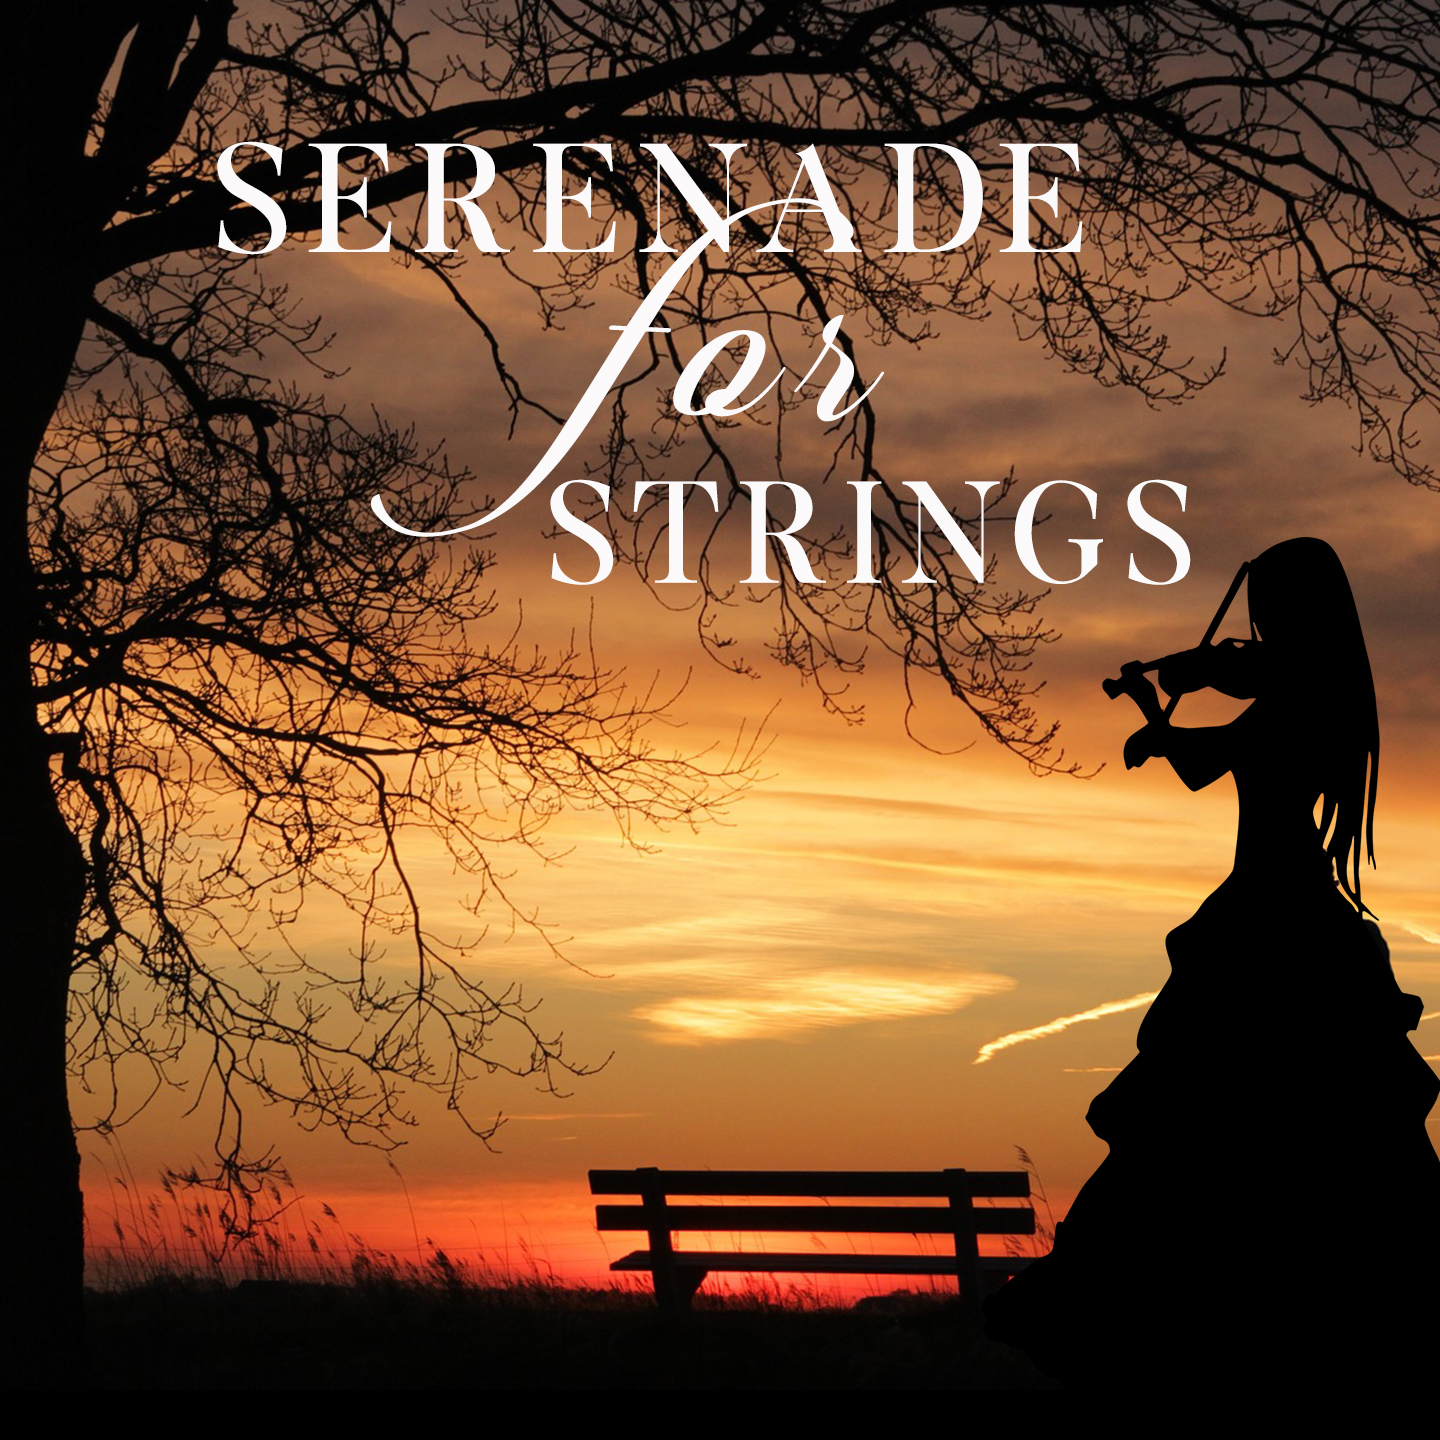 Serenades for Strings